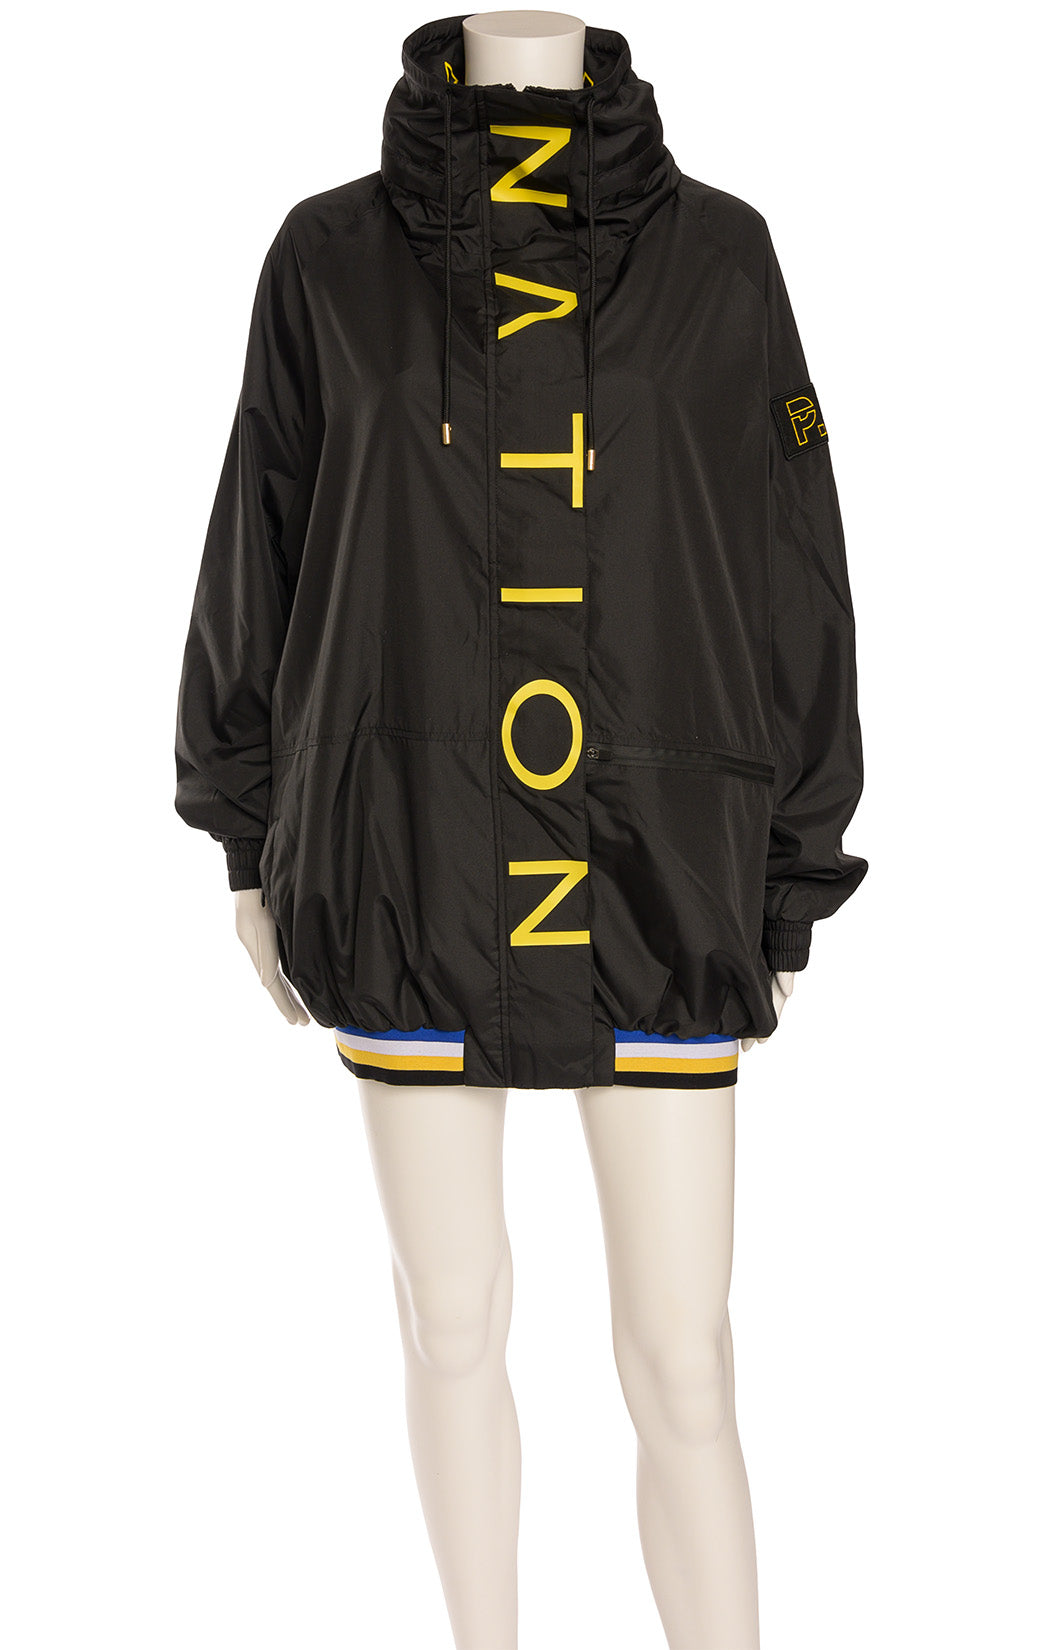 Second front view of P.E.NATION with tags  Jacket